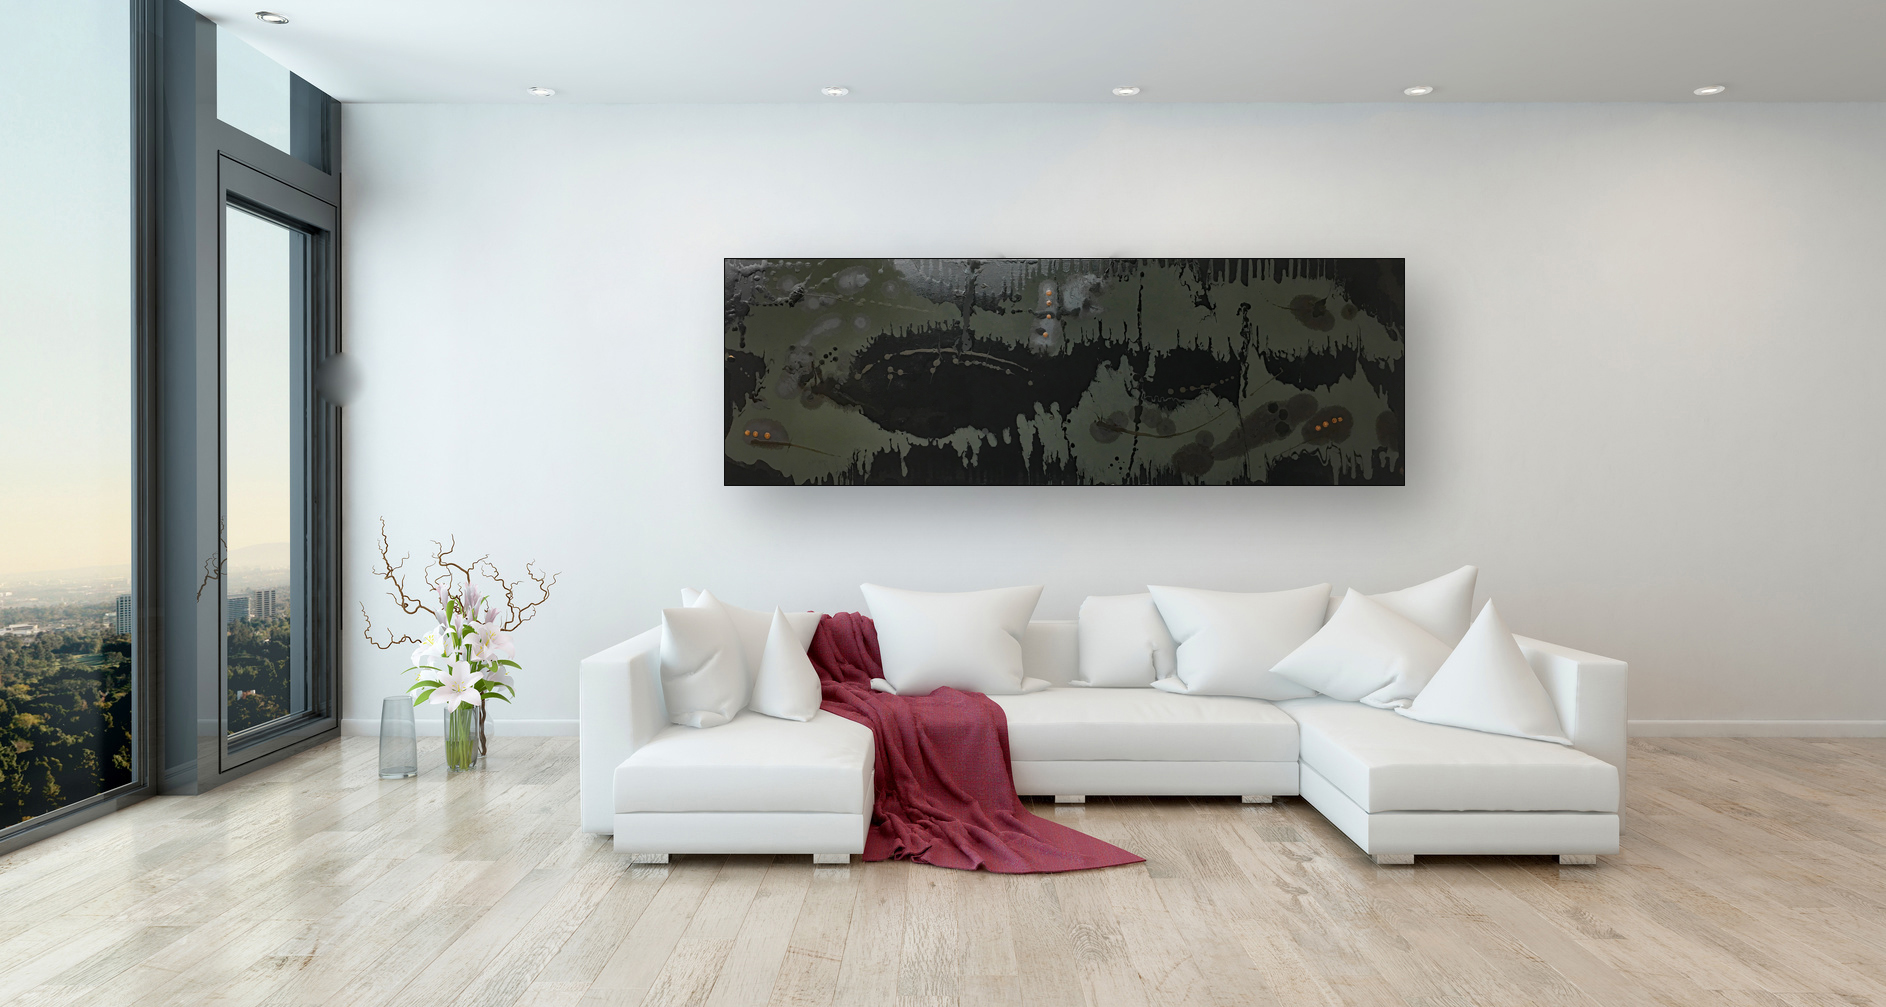 Red Throw on White Sofa in Modern Living Room